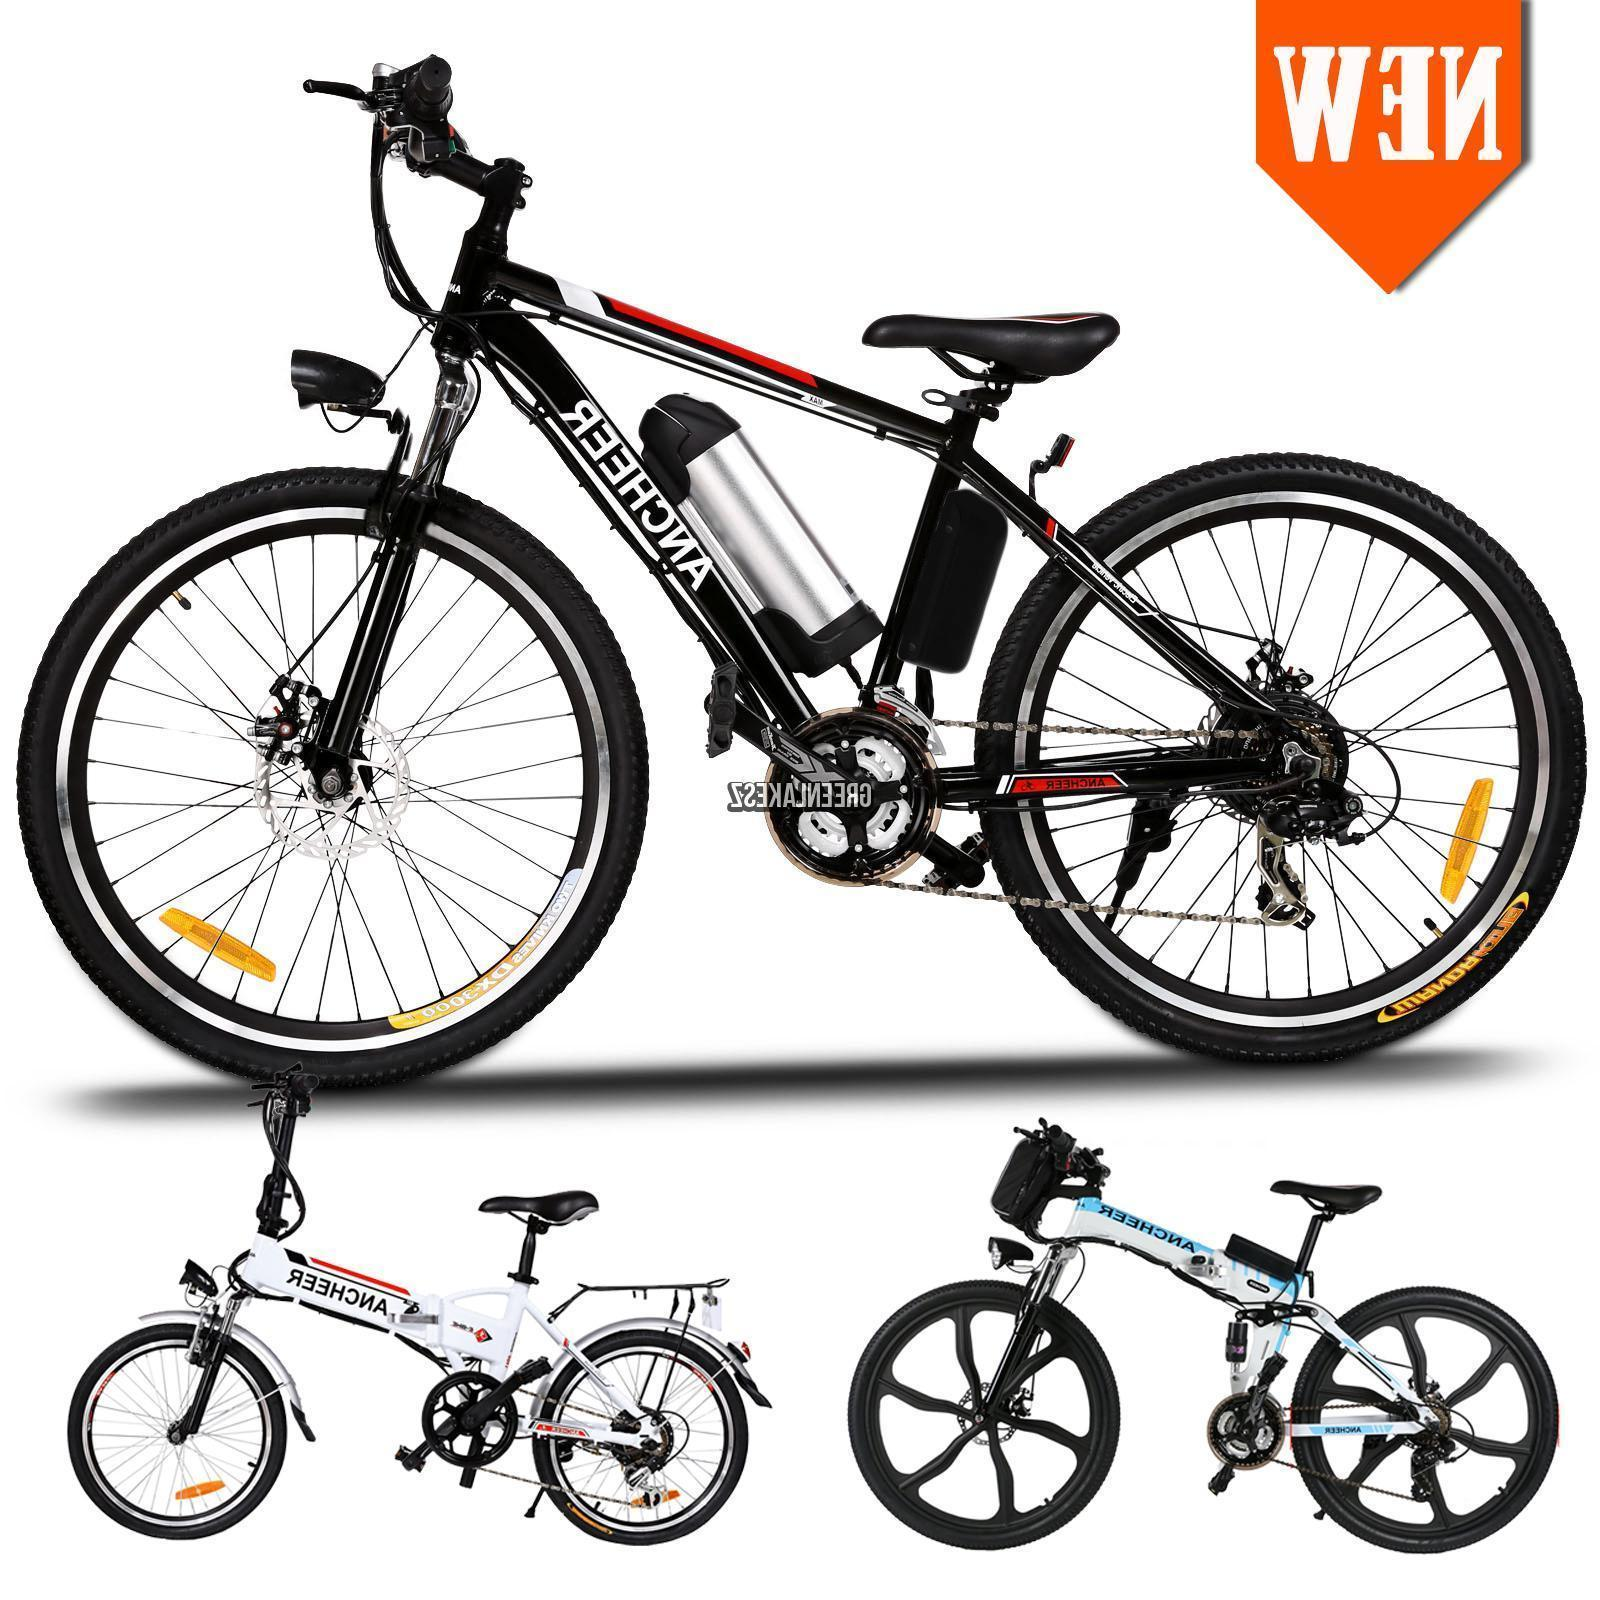 Brand New 36V 250W Mountain Bike Electric Bicycle Fat Tire E